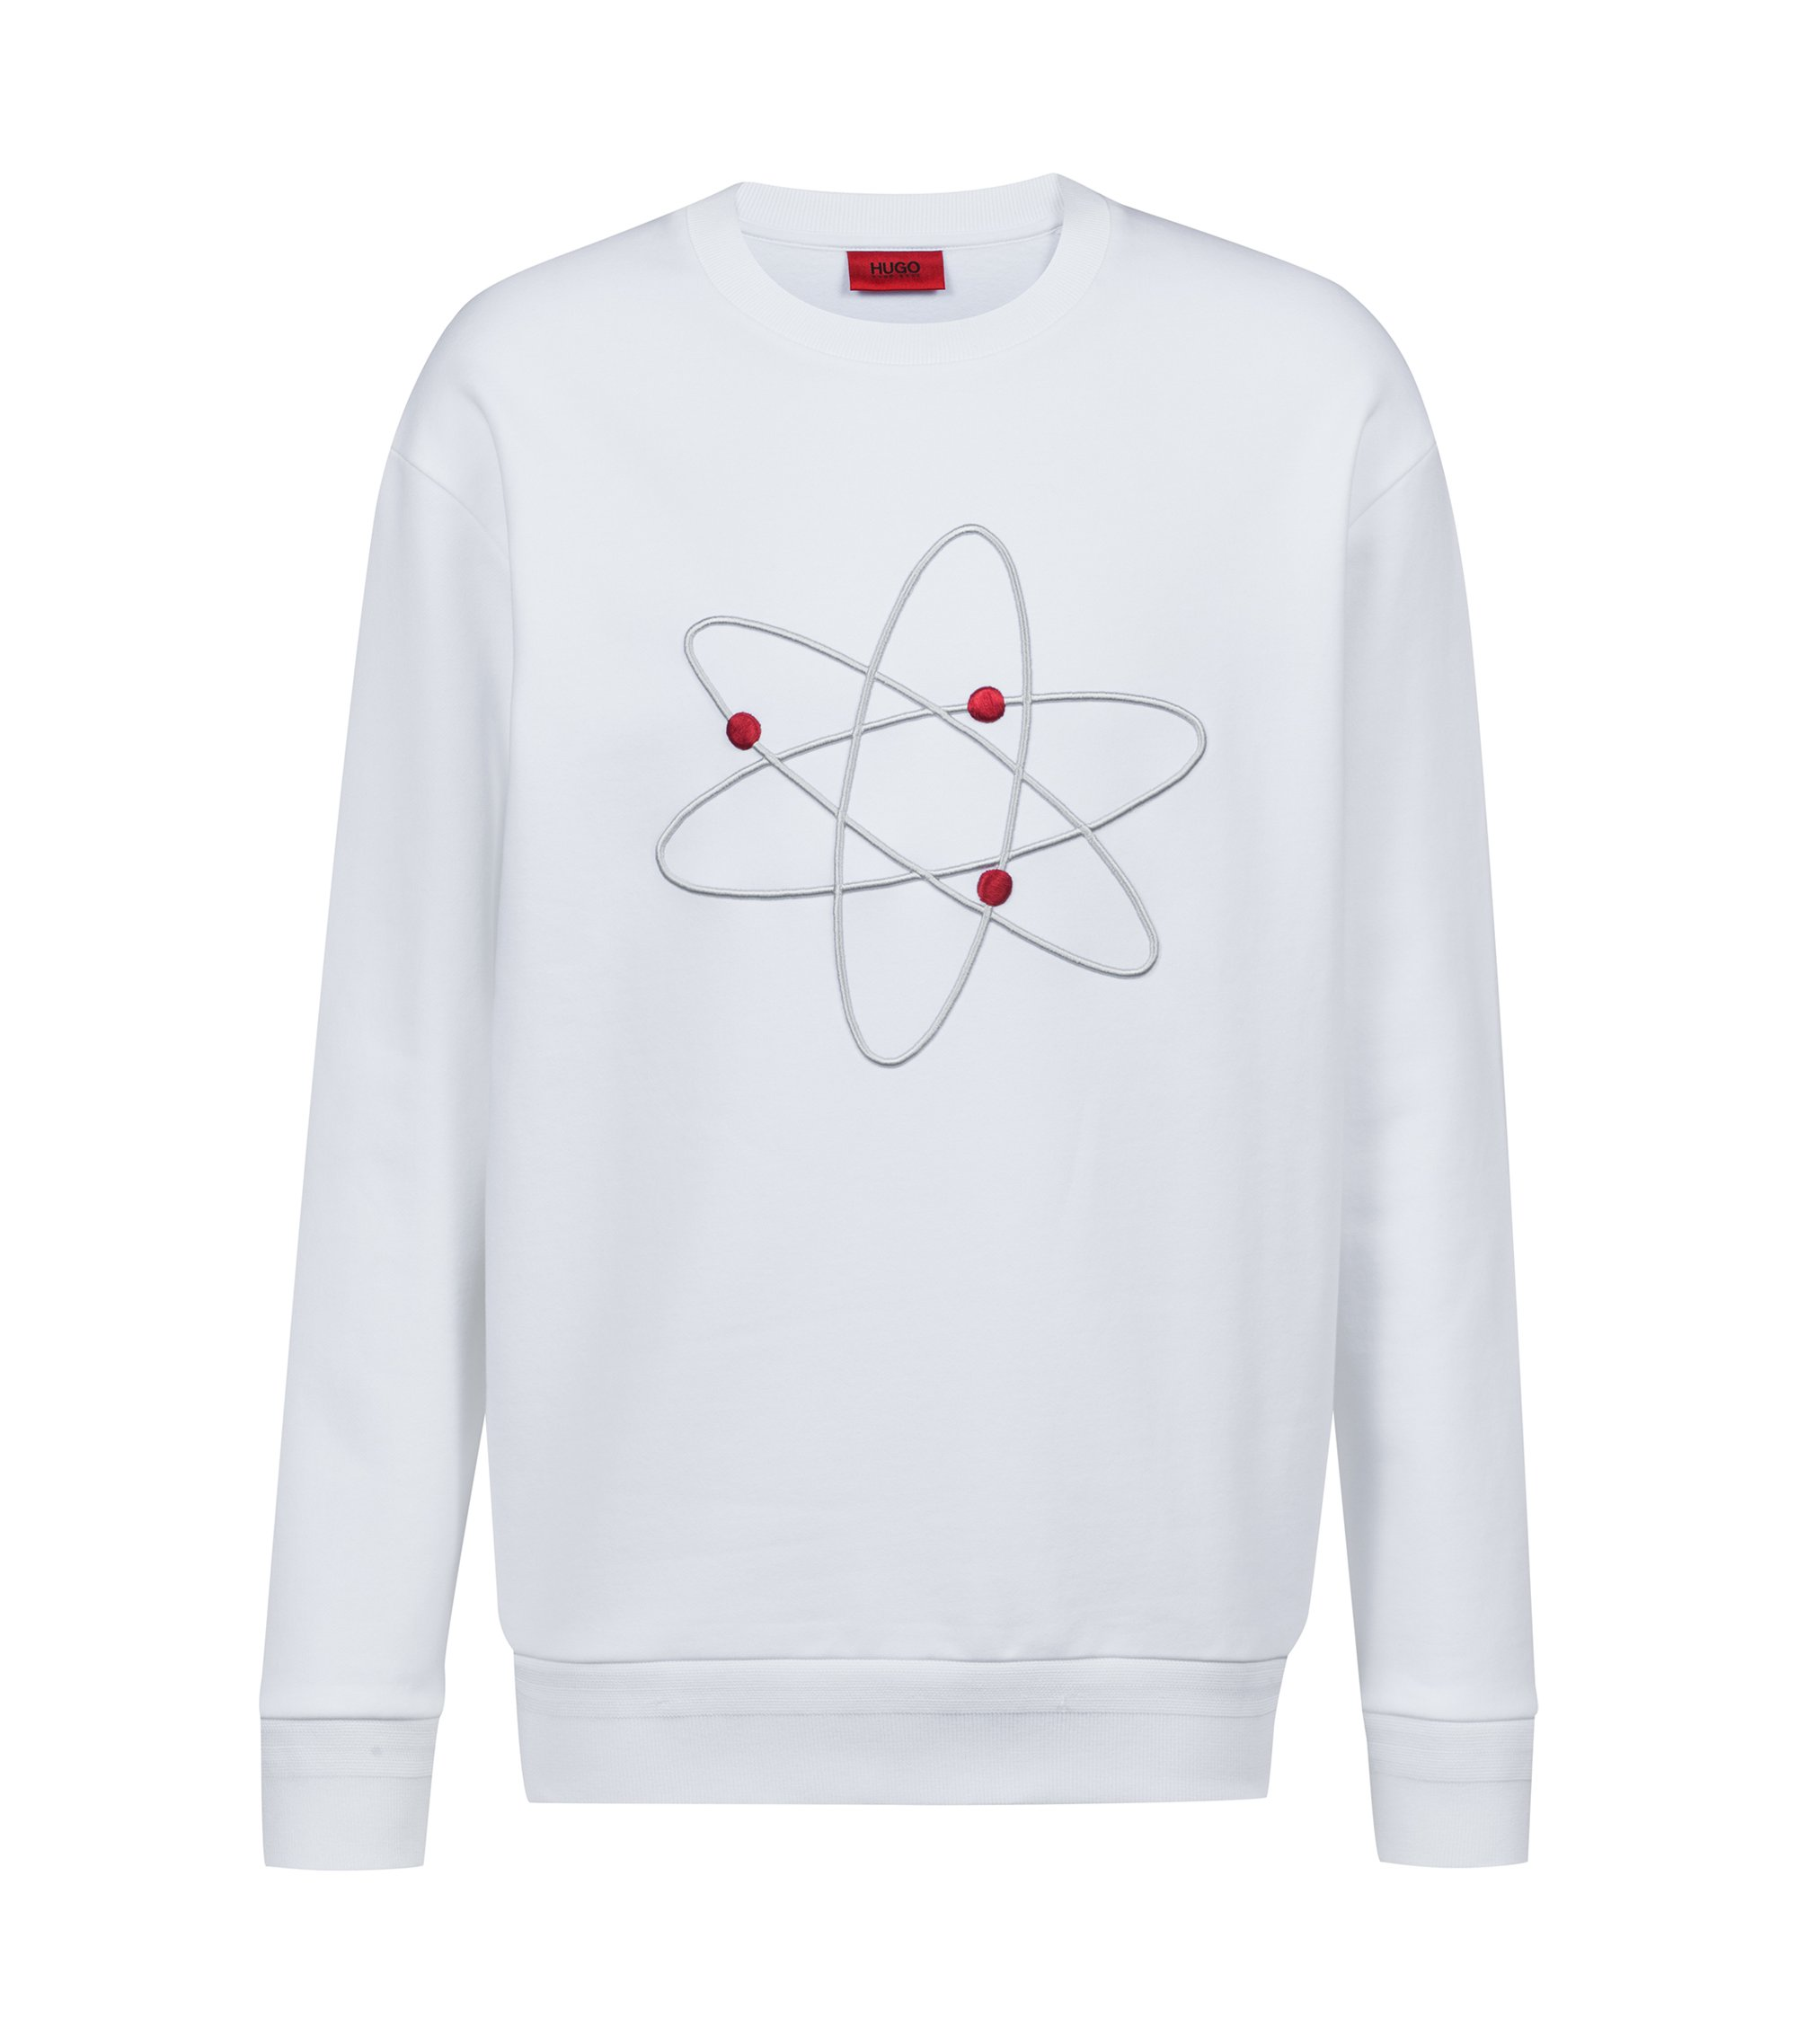 Oversized-fit fleece sweatshirt with atom embroidery, White